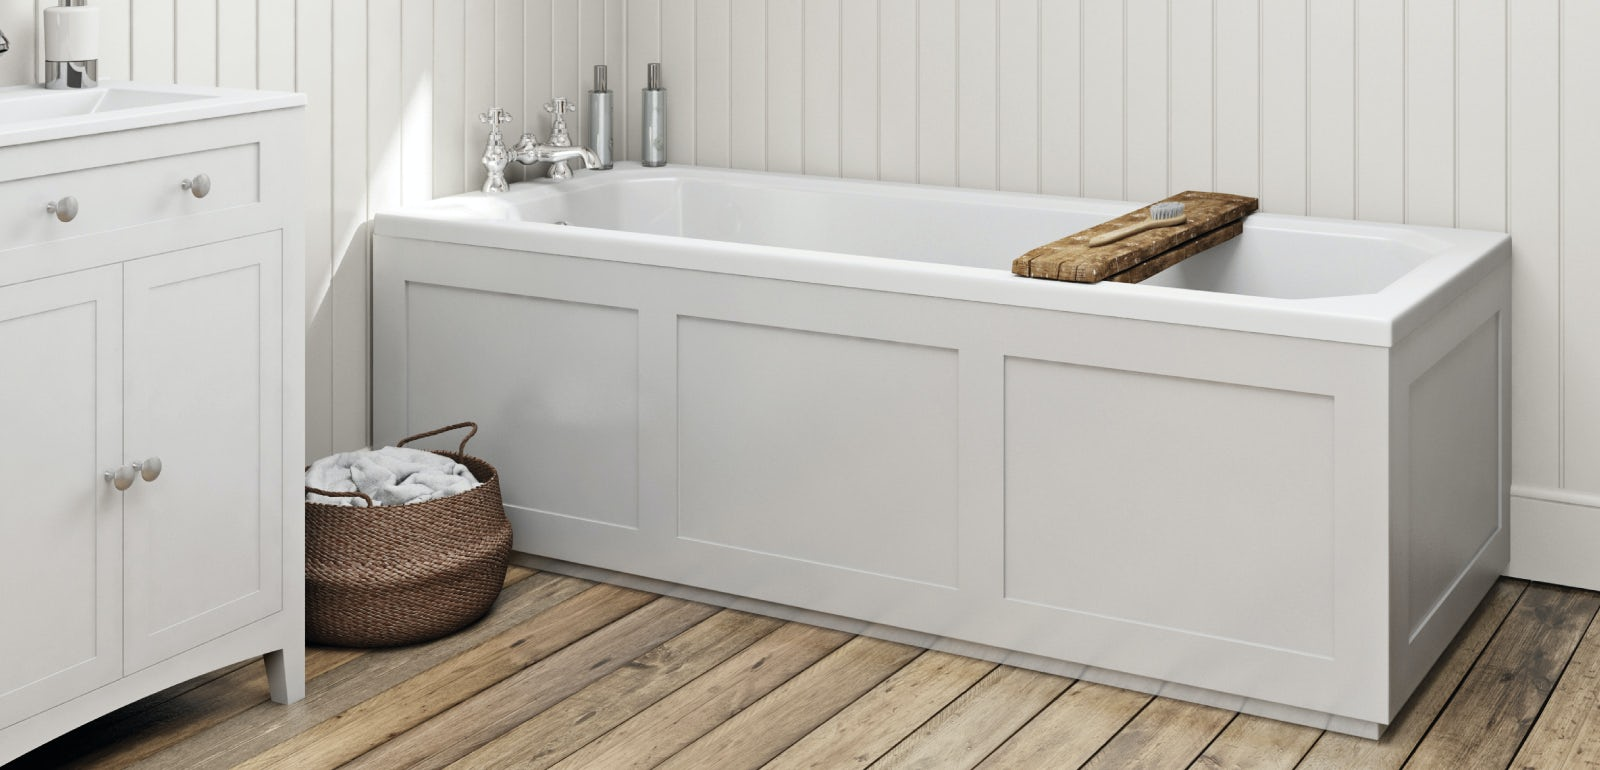 How to fit a wooden bath panel Bathroom designs wood paneling